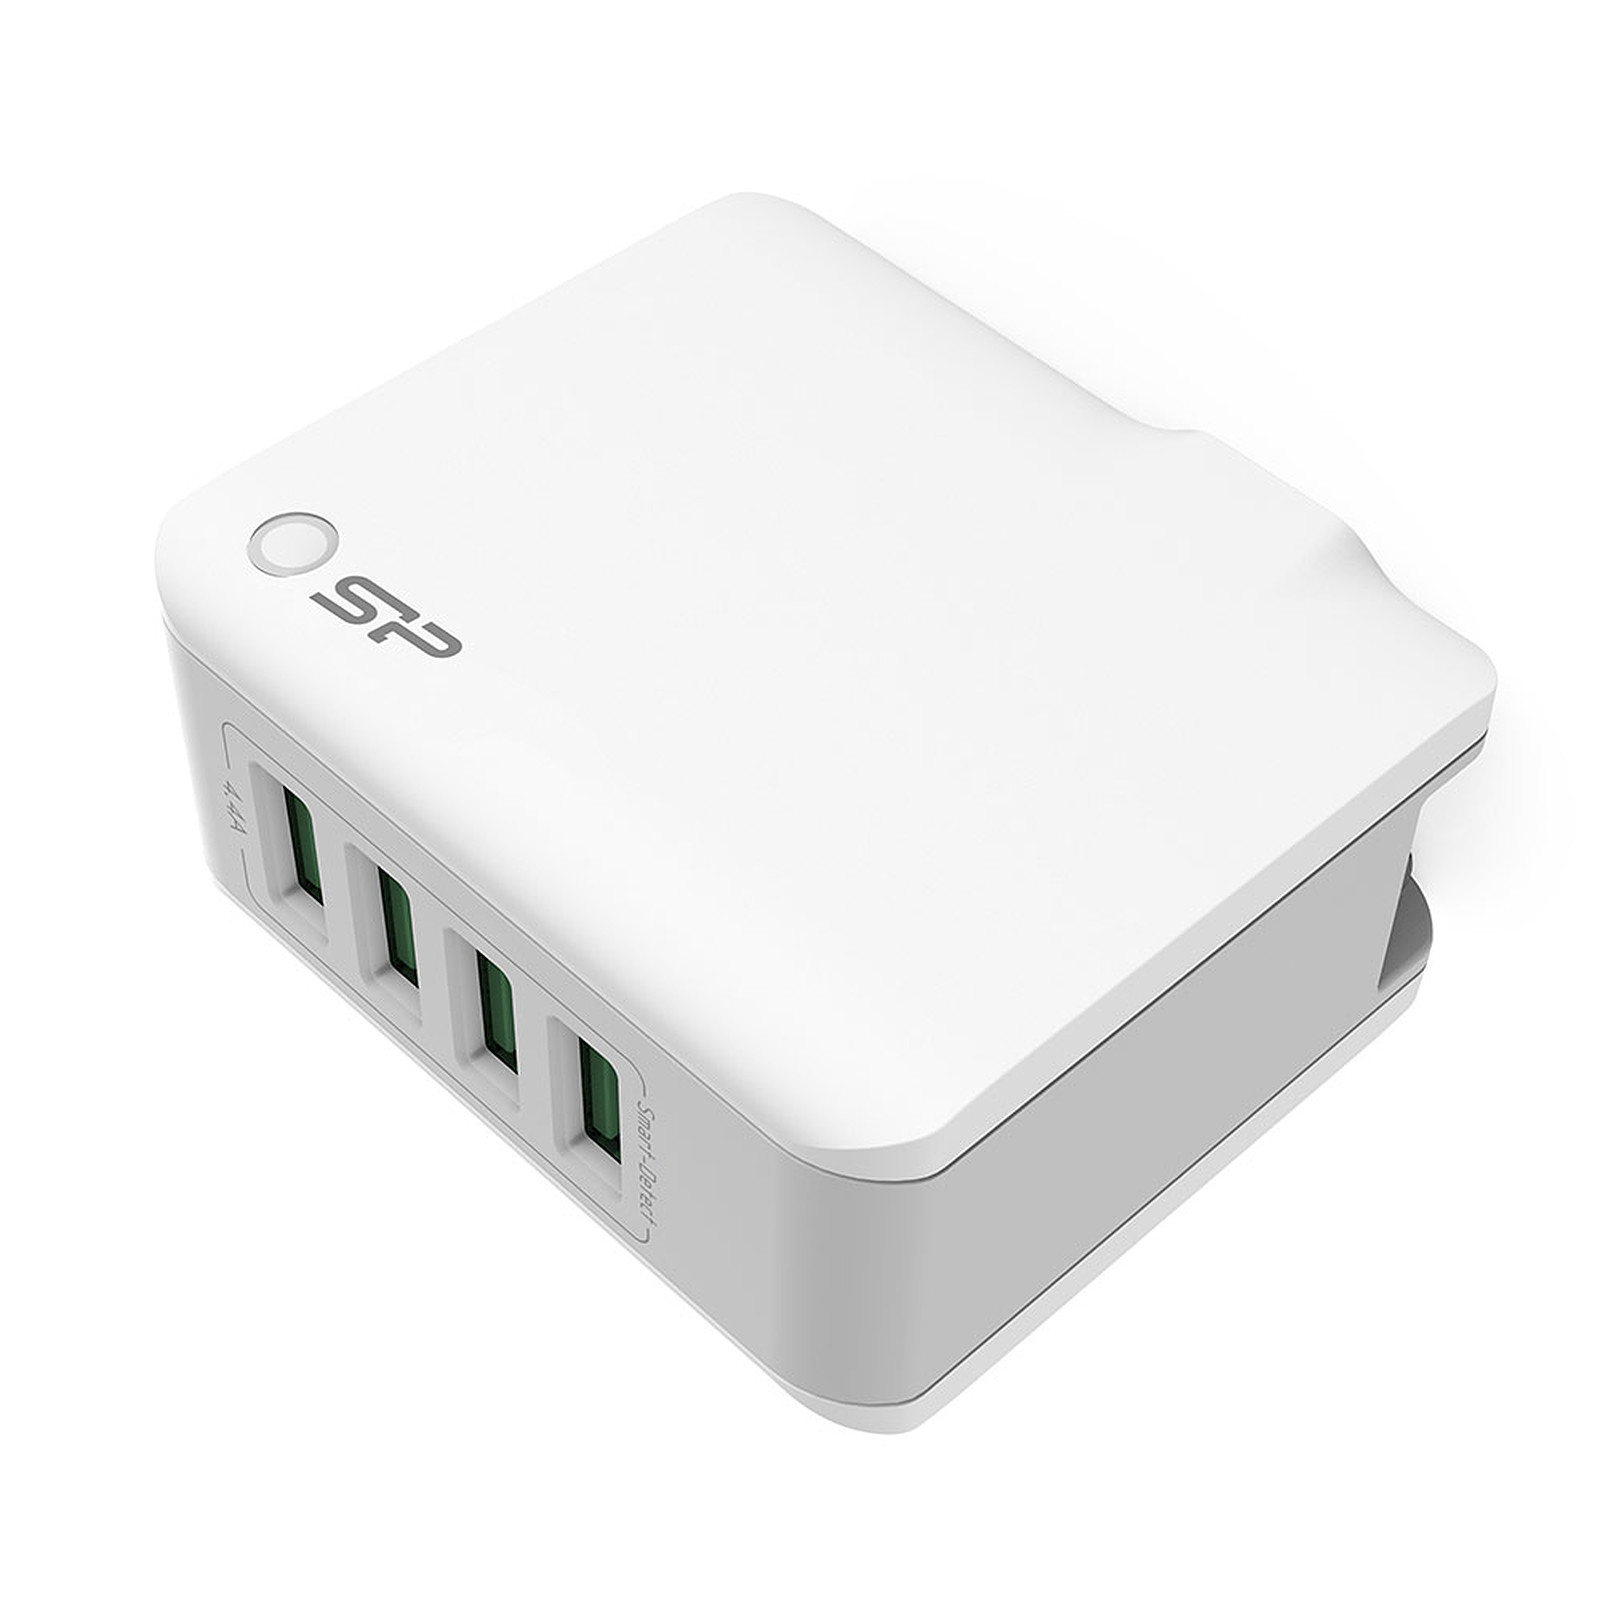 Silicon Power Chageur USB 4 ports WC104P